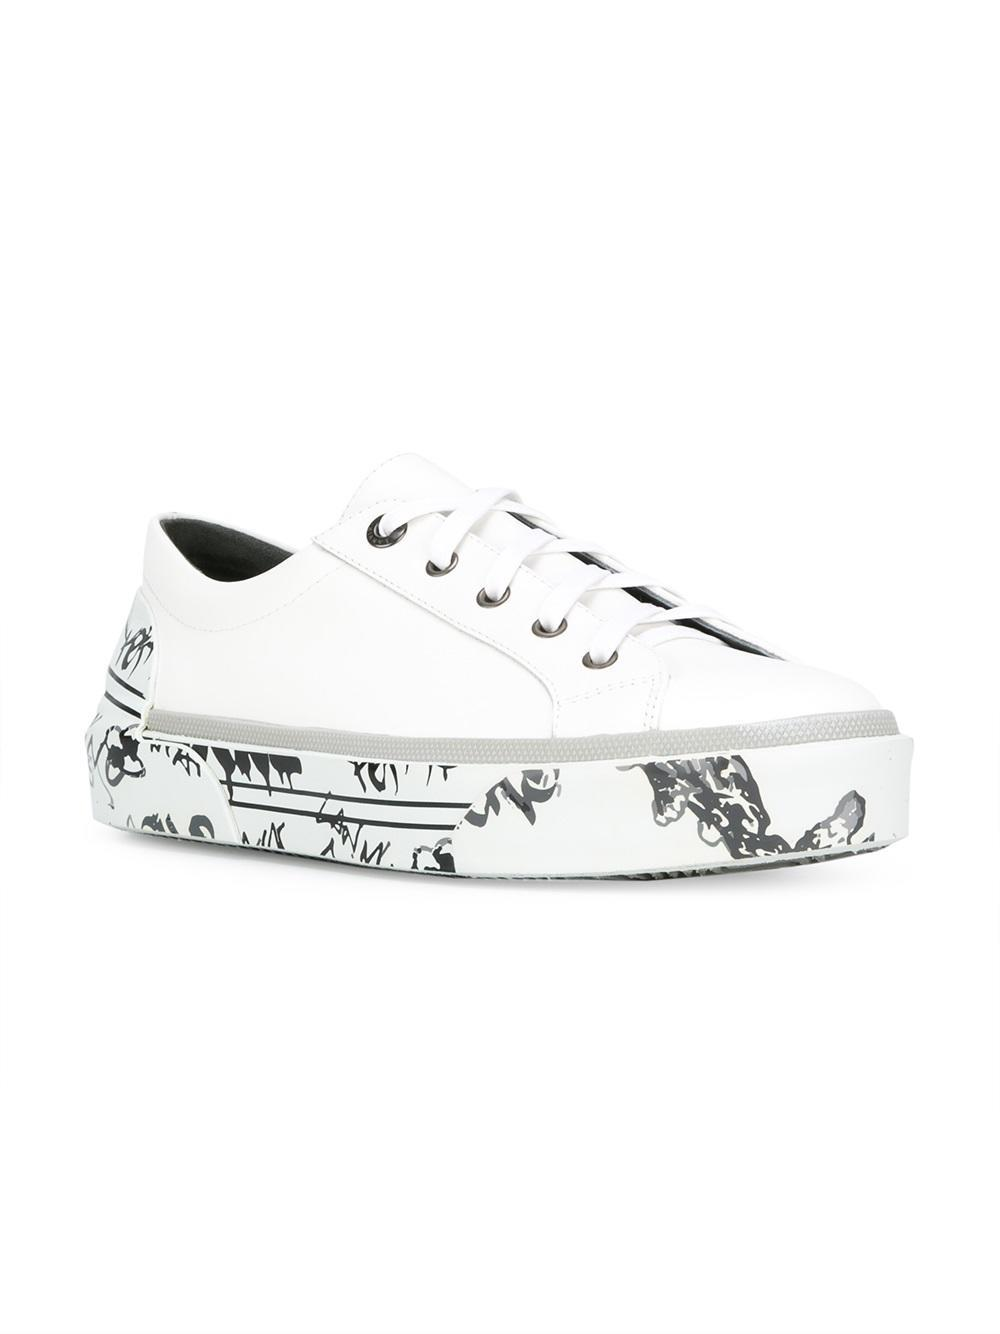 Lanvin Leather Printed Sole Sneakers in White